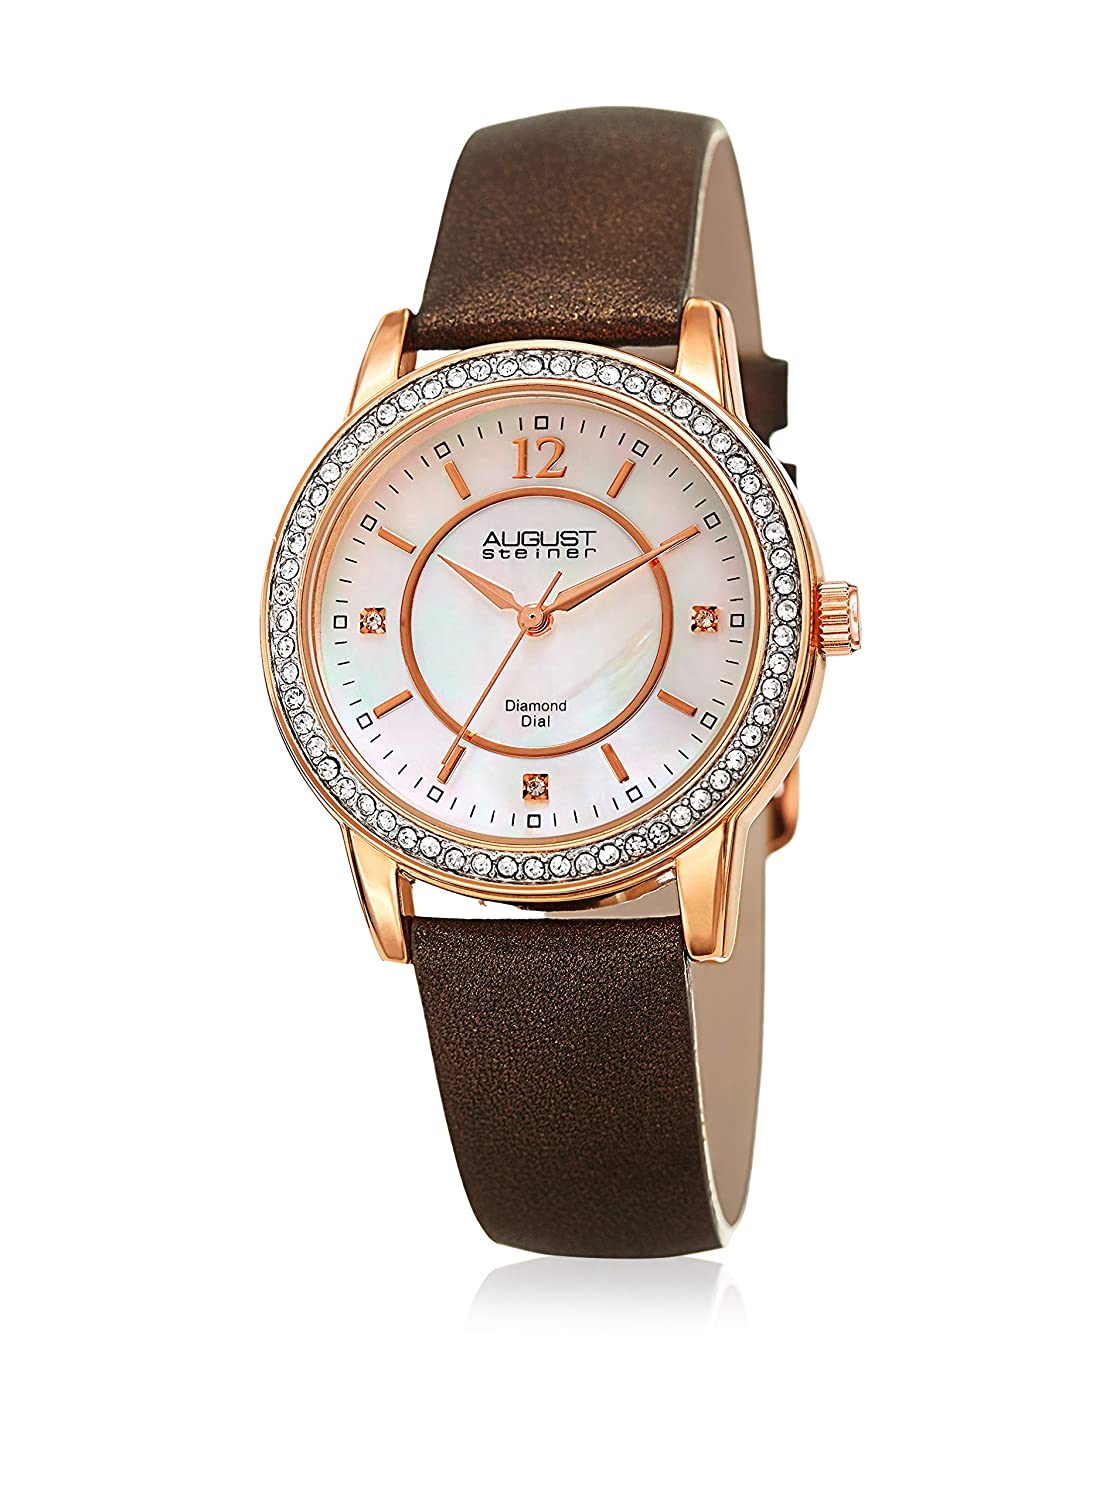 August Steiner Women 's QuartzステンレススチールandレザーCasual Watch, Color : Brown (Model : as8227br) B01M0LPFU7